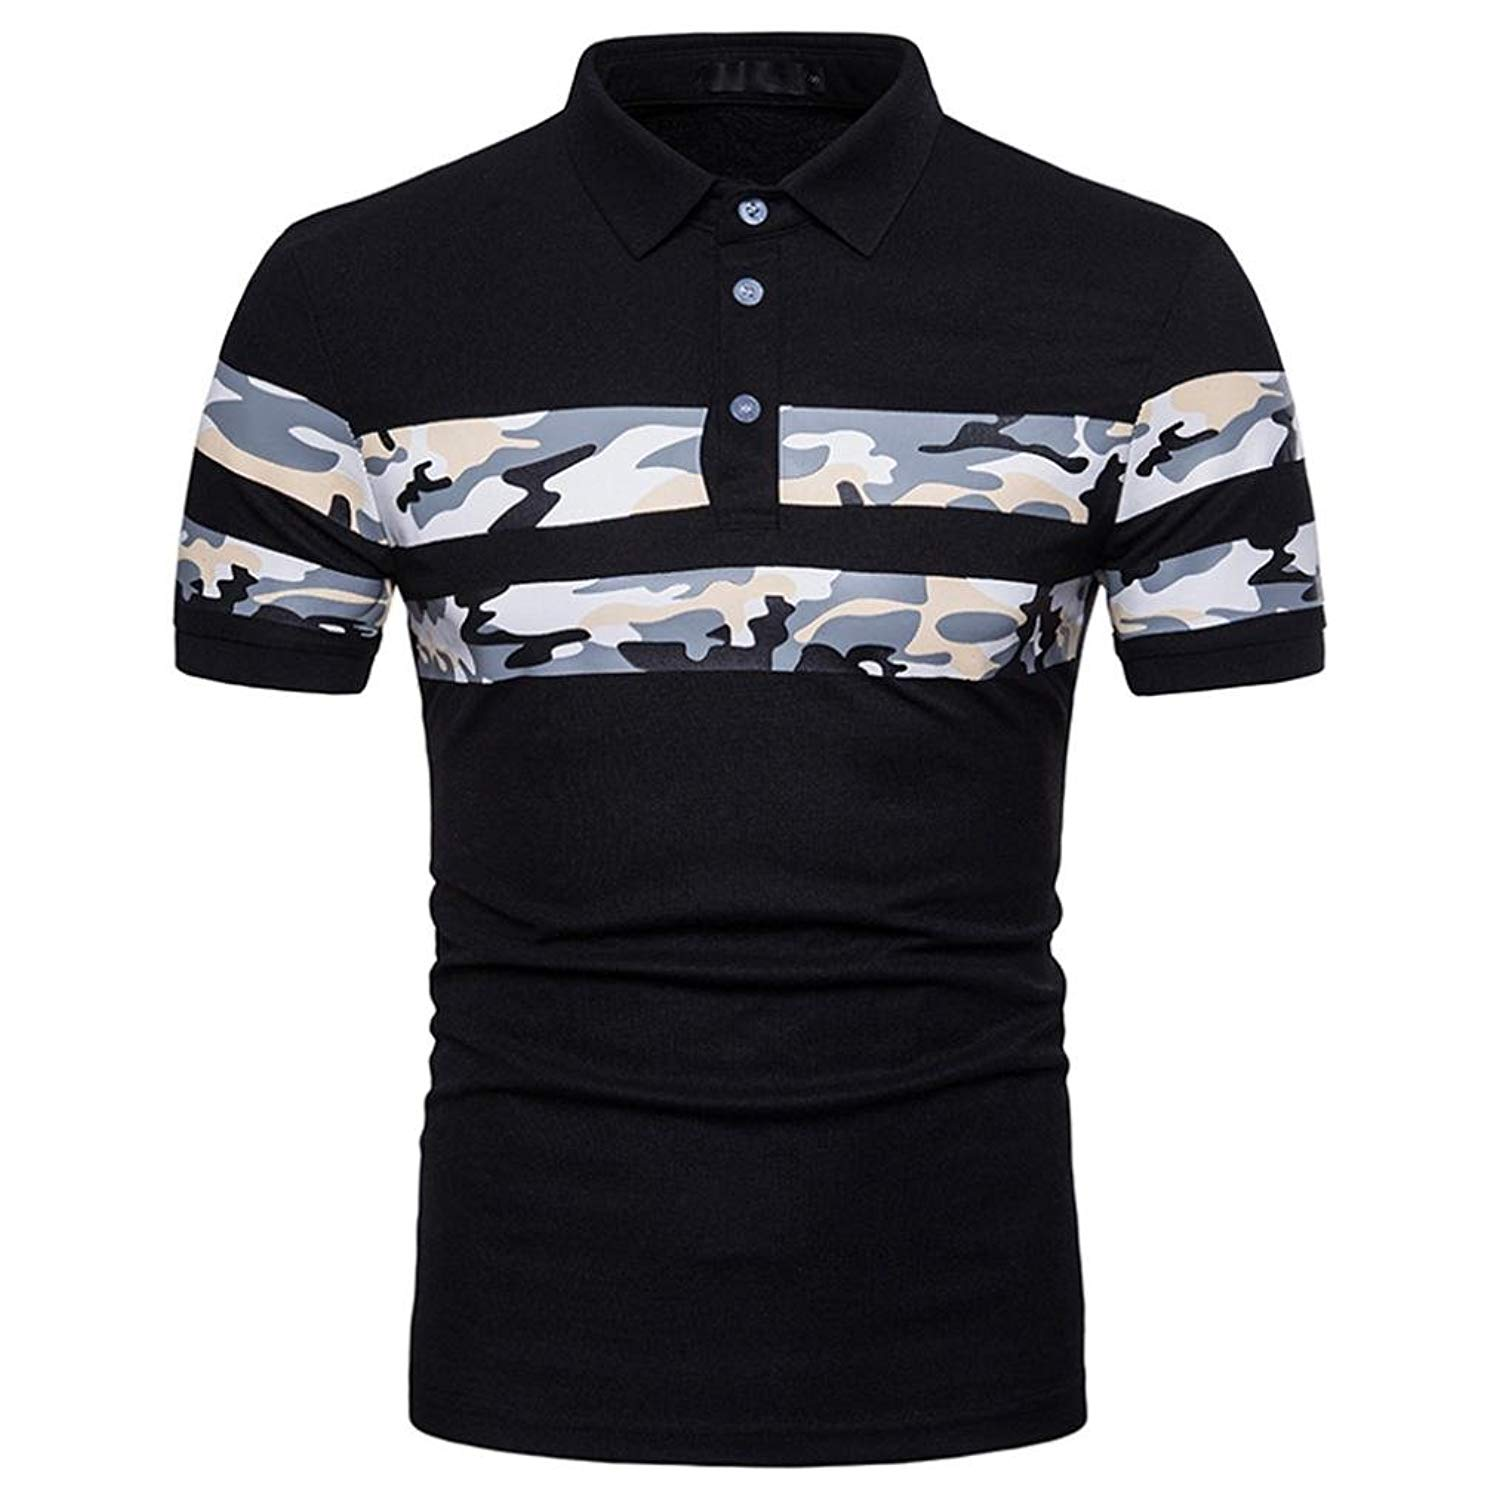 59958623 Get Quotations · BSGSH Men's Polo Shirts Casual Camouflage 3 Button Placket  Short Sleeve Golf Polo T-Shirt